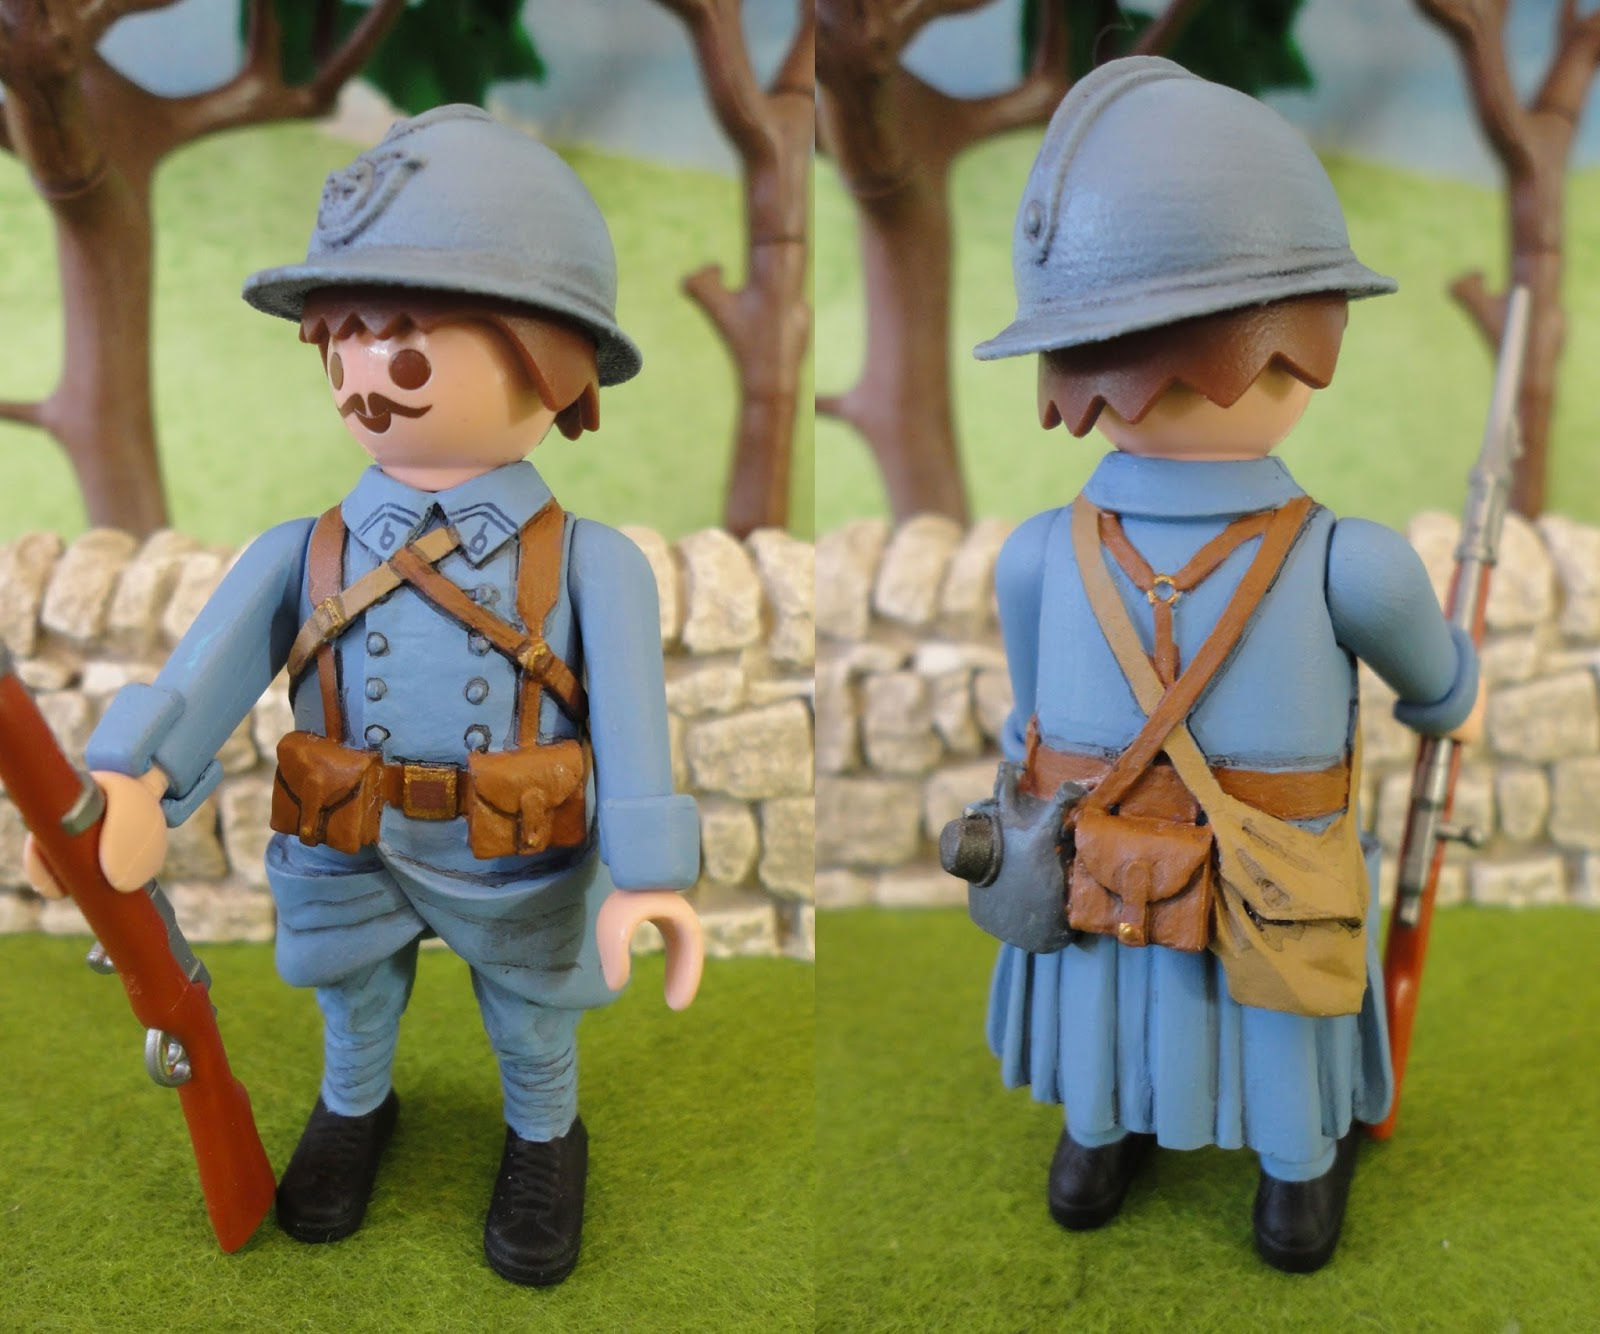 Playmobil 1er empire napoleon grenadier dragon hussard secession nordiste sudiste spartiate - Playmobil soldat ...